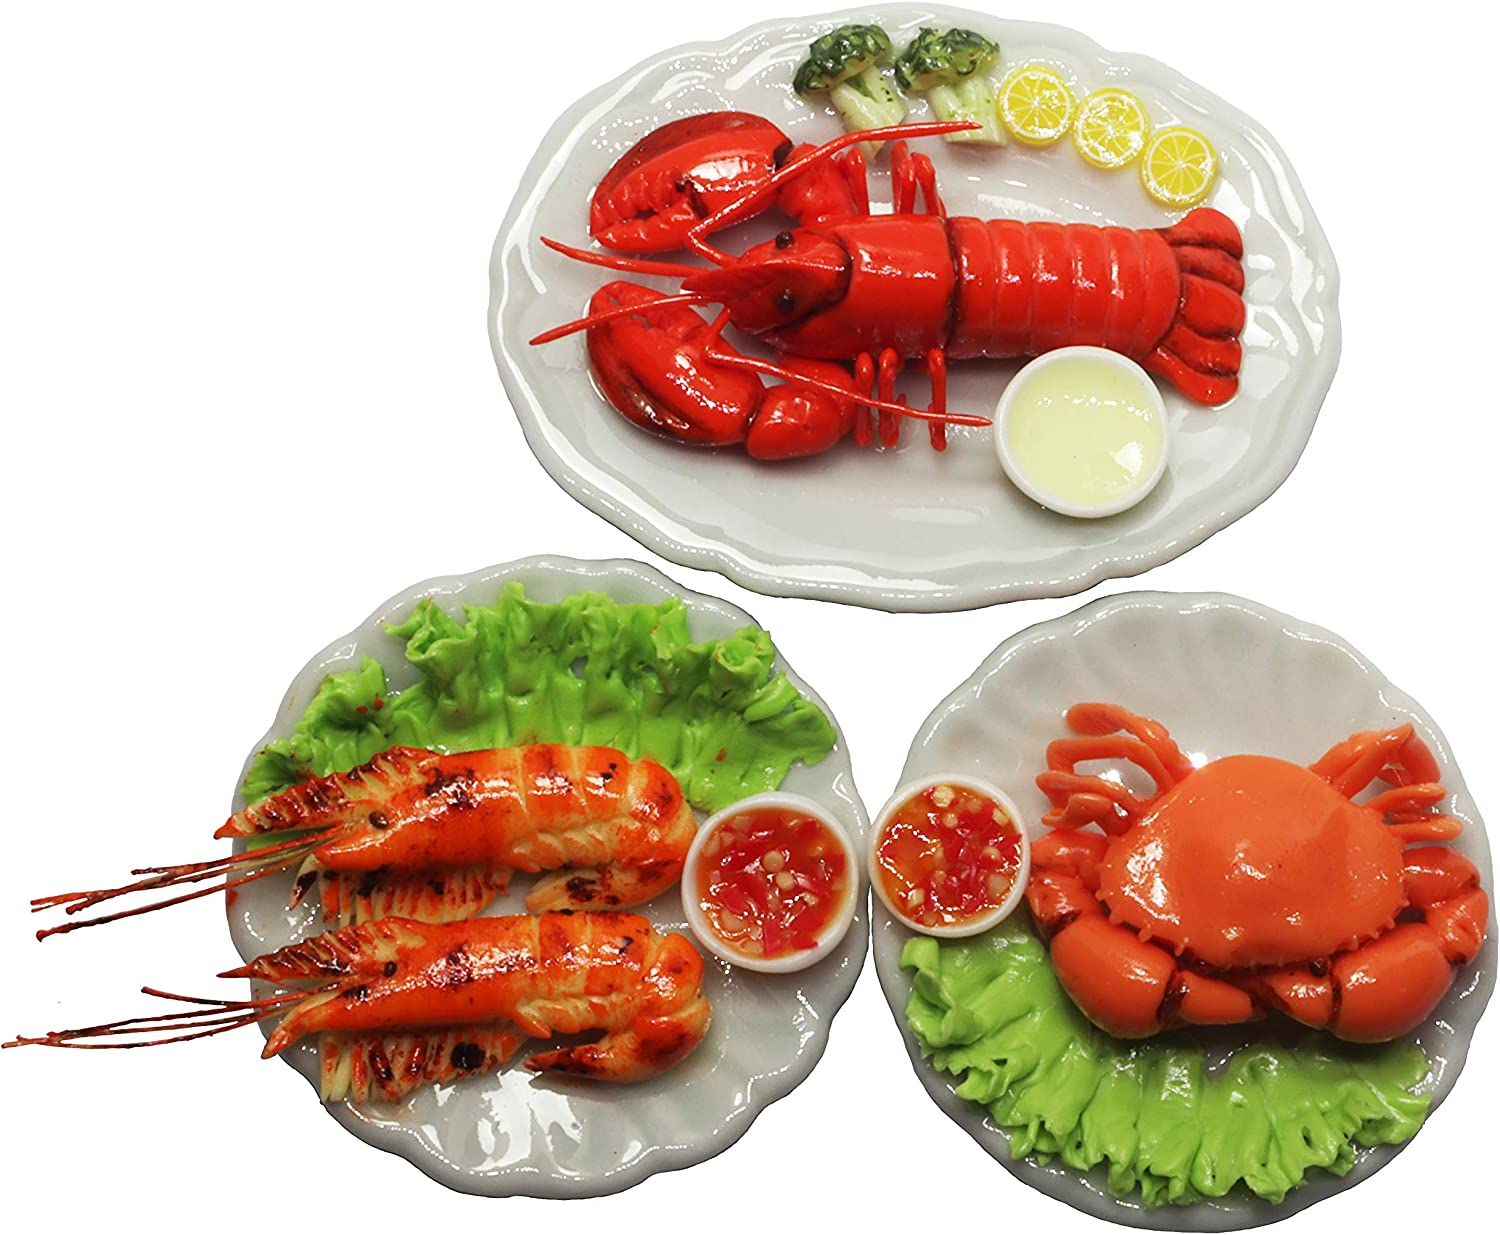 ThaiHonest 3 Assorted Dollhouse Miniature Mix Seafood with Lobster,Tiny Food Dollhouse Accessories for Collectibles